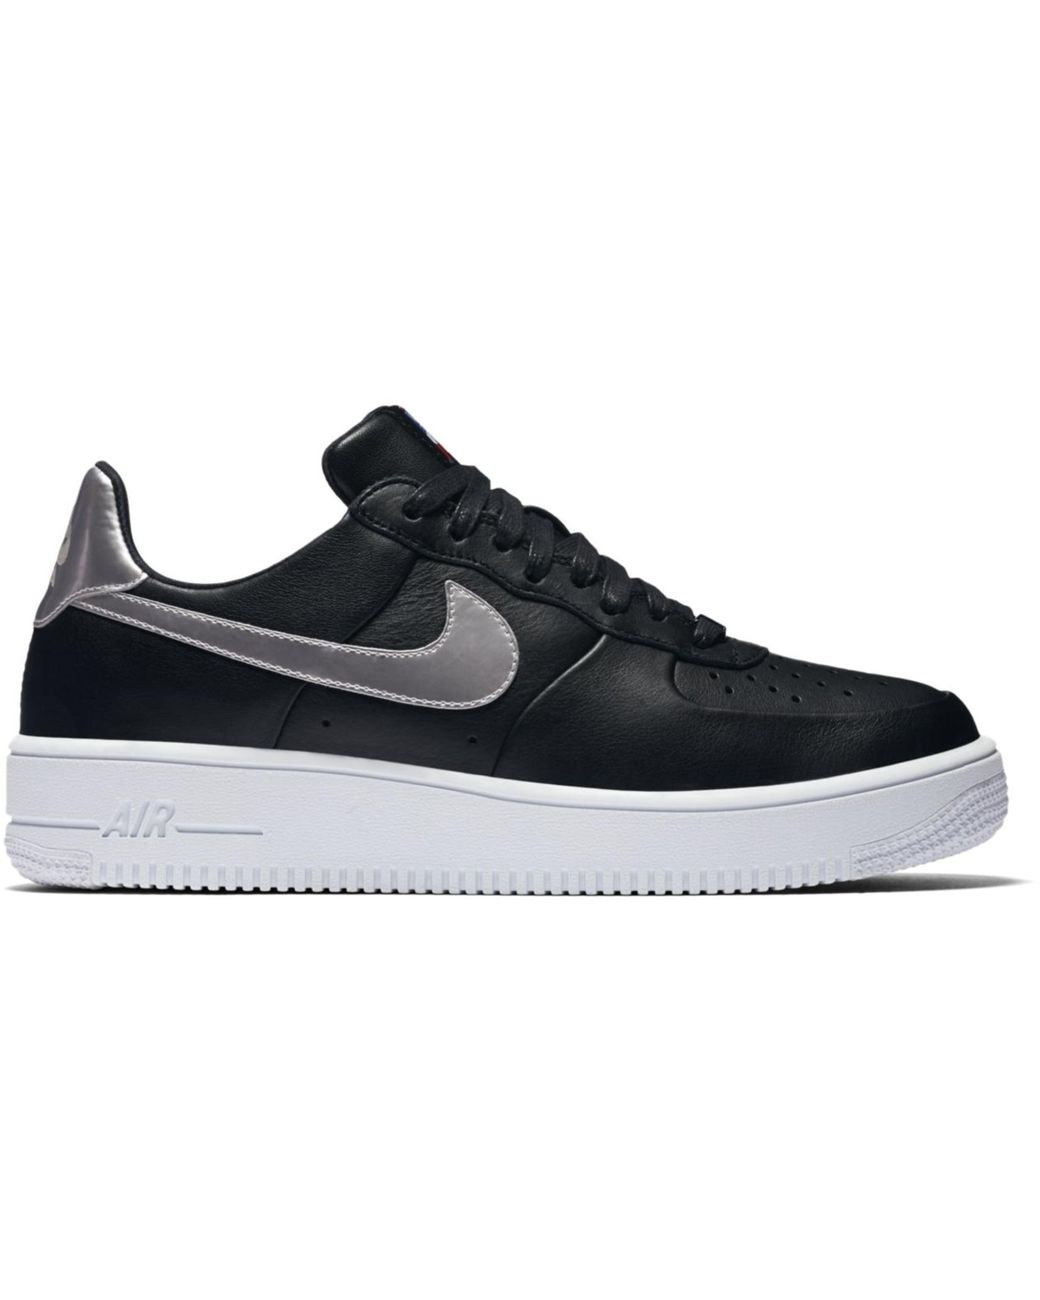 release date dd657 e986c Men's Black Air Force 1 Low Ultraforce Rkk Patriots